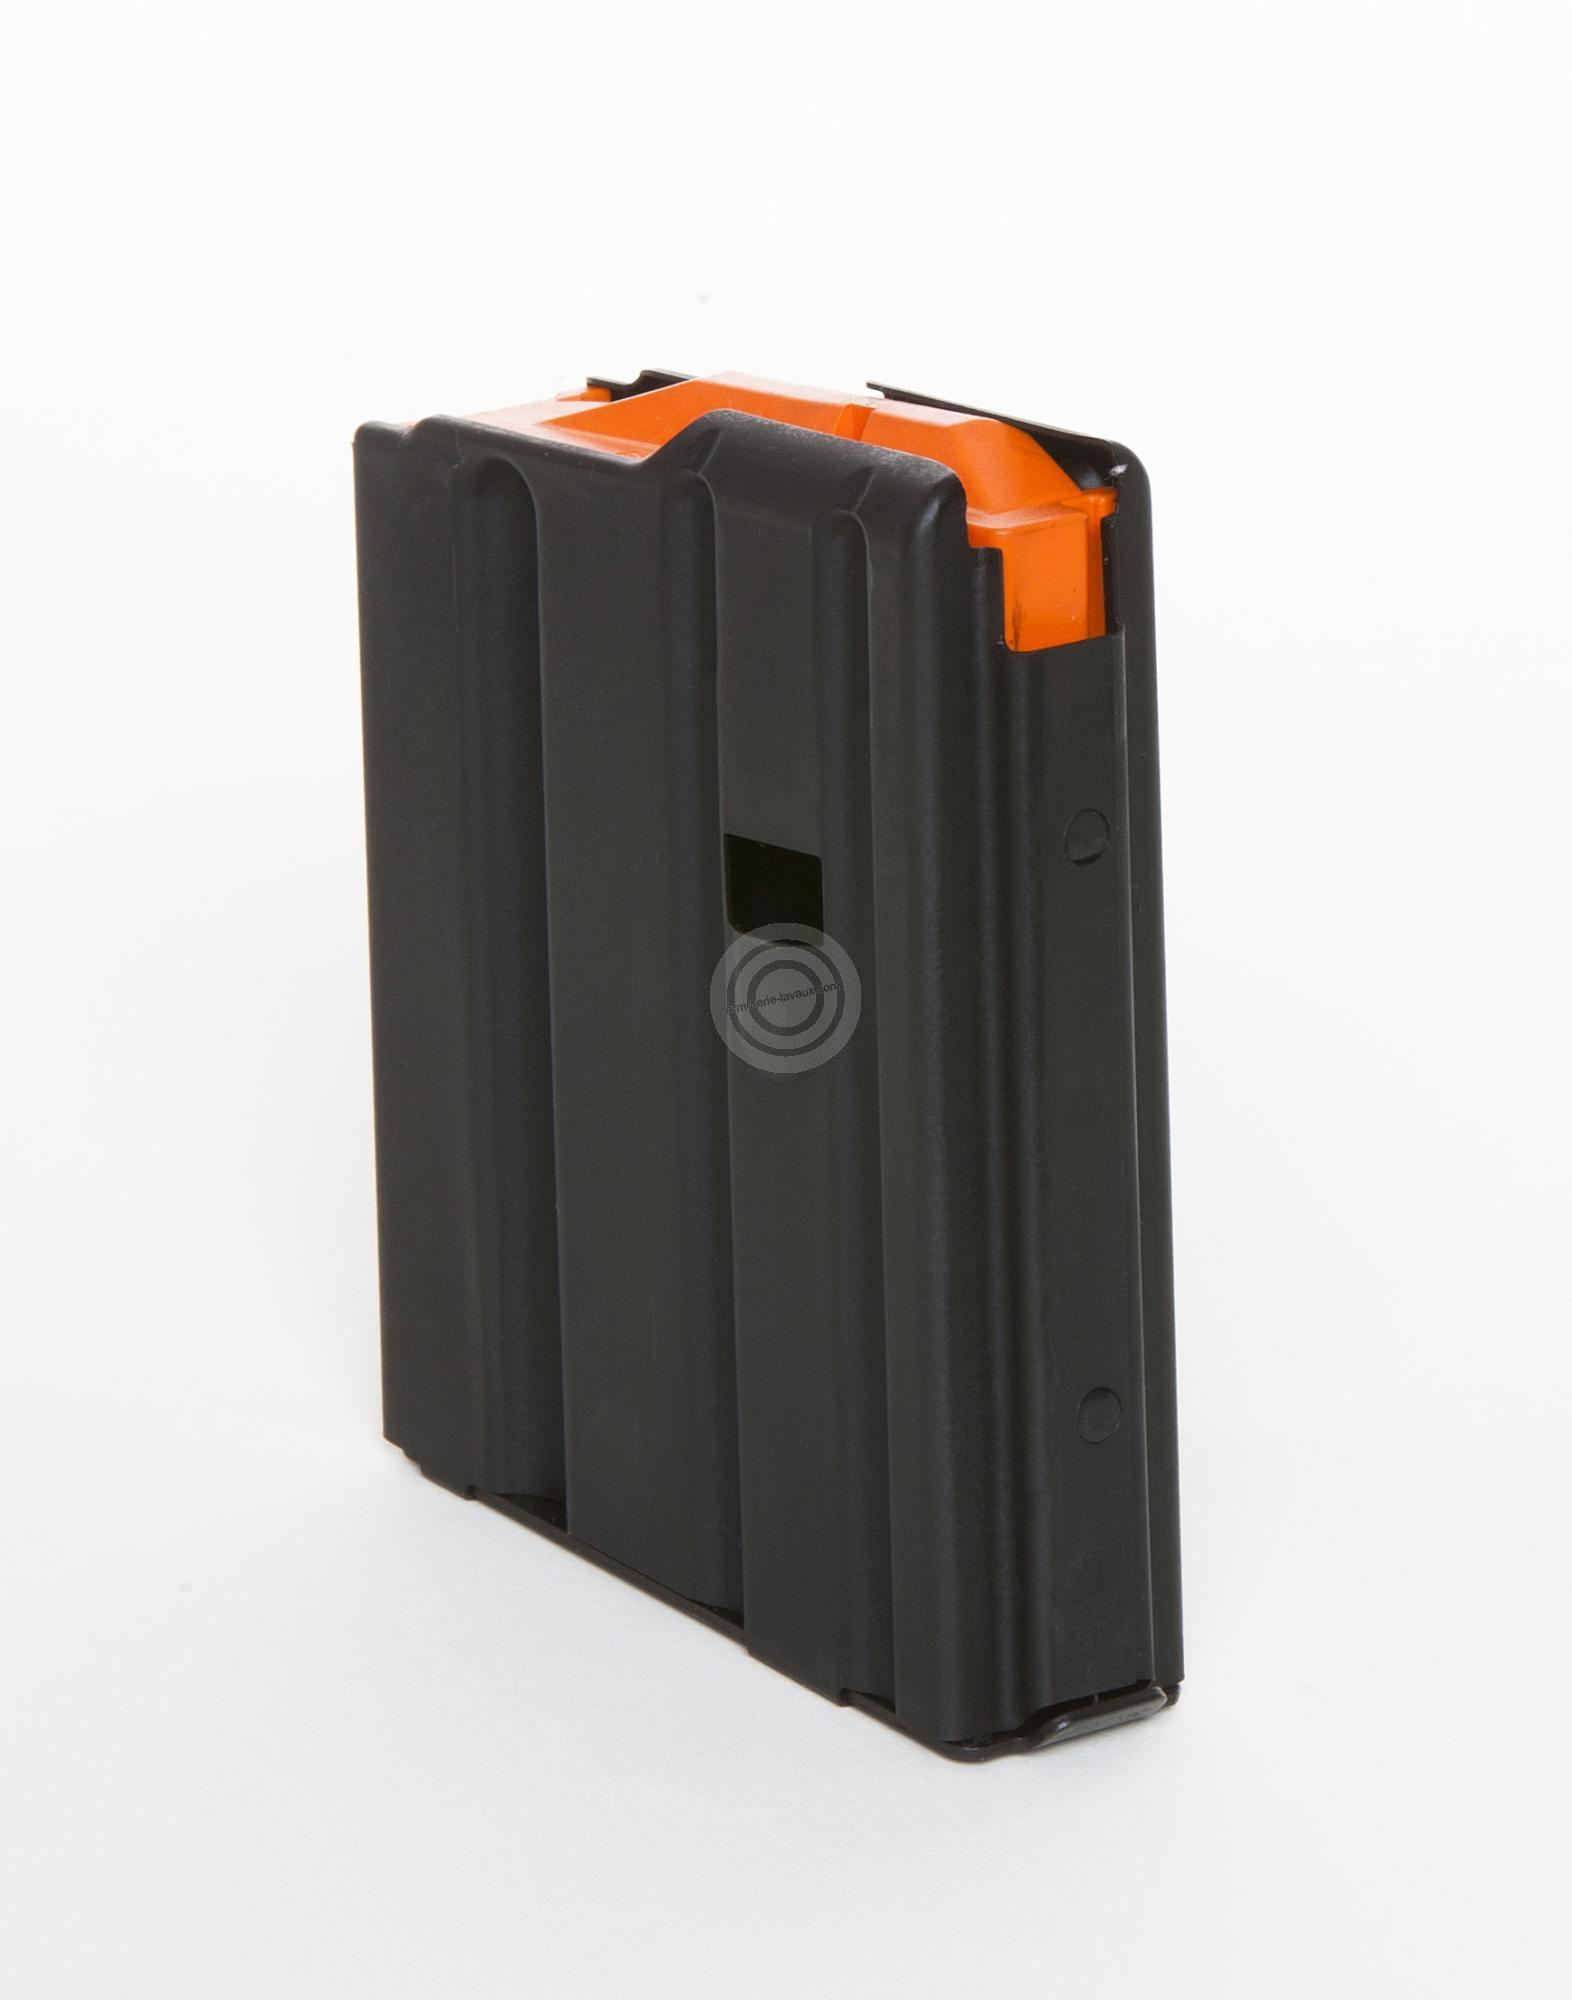 Chargeur AR15 stanag CPRODUCTS Defense cal.223 Rem (10 coups)